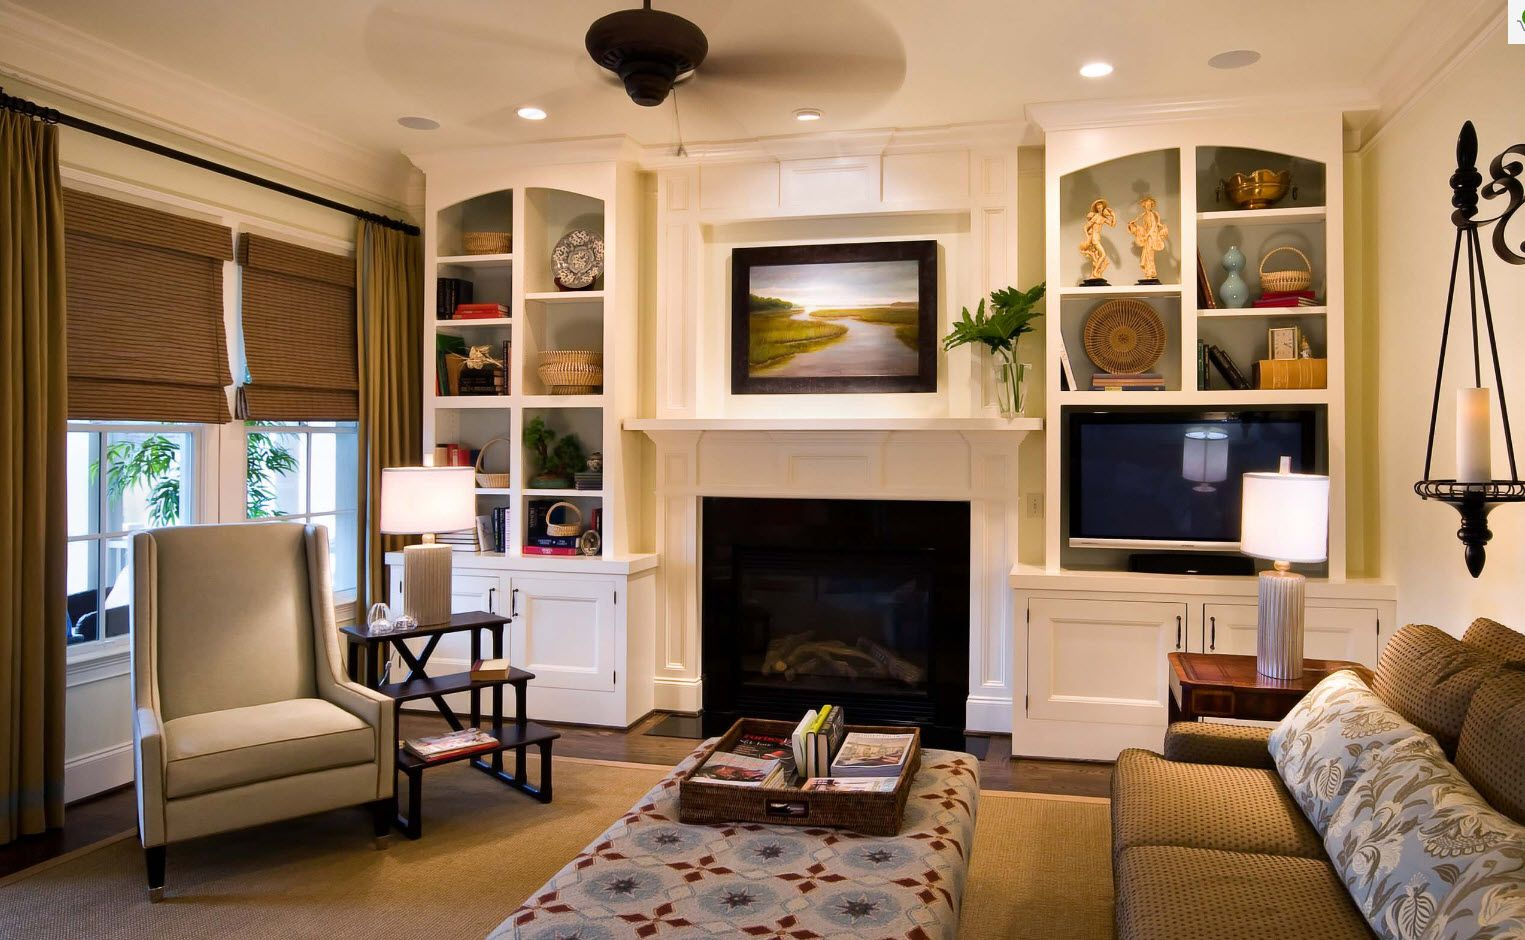 Fireplace and picture at the mantelshelf in white creamy color theme